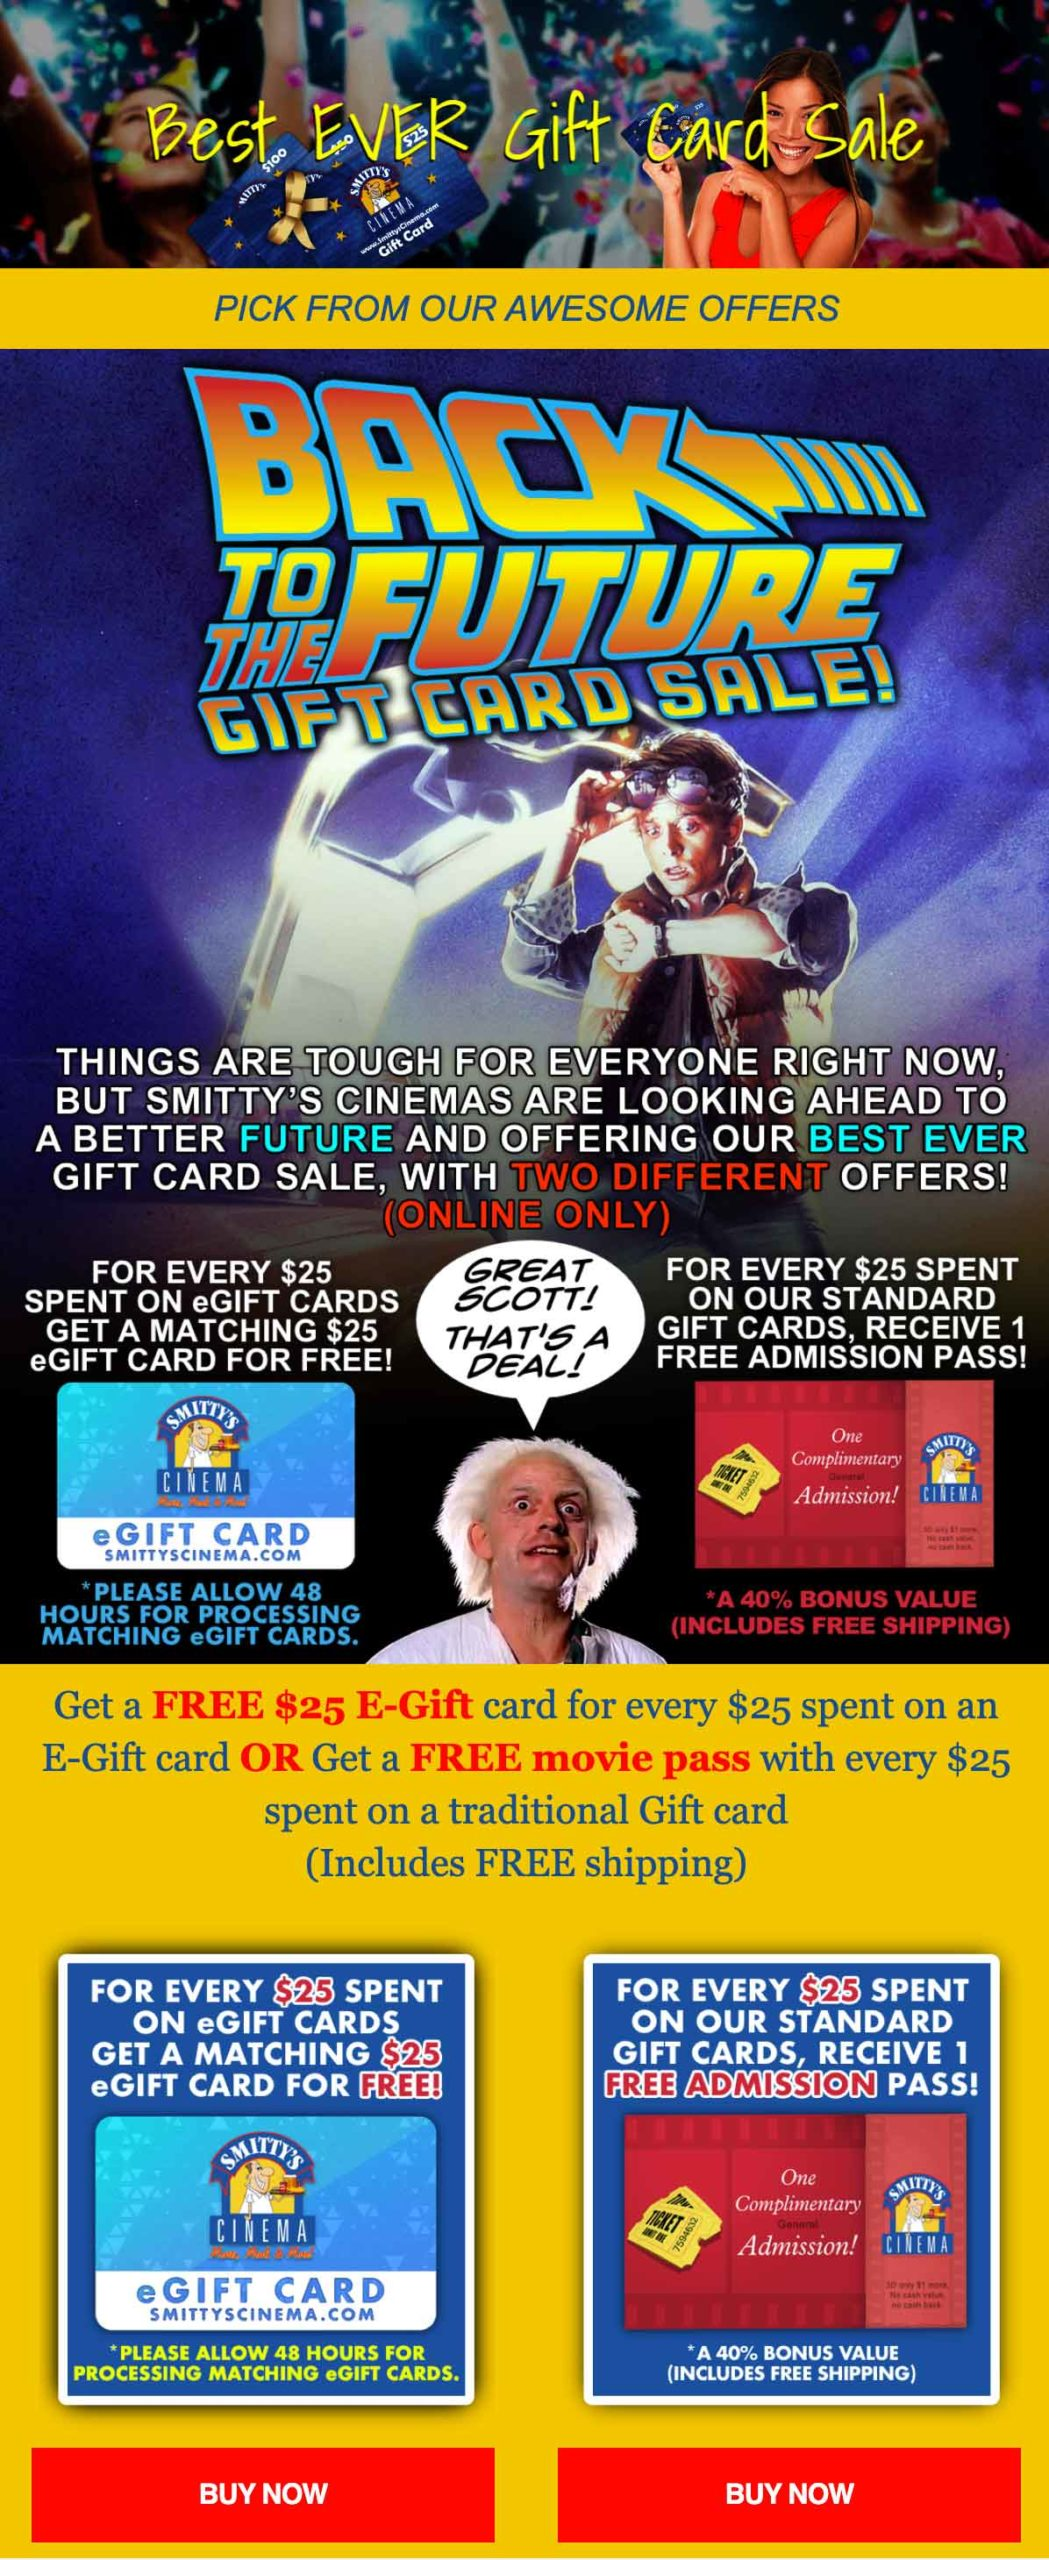 Smitty's Cinema Best Ever Gift Card Sale email